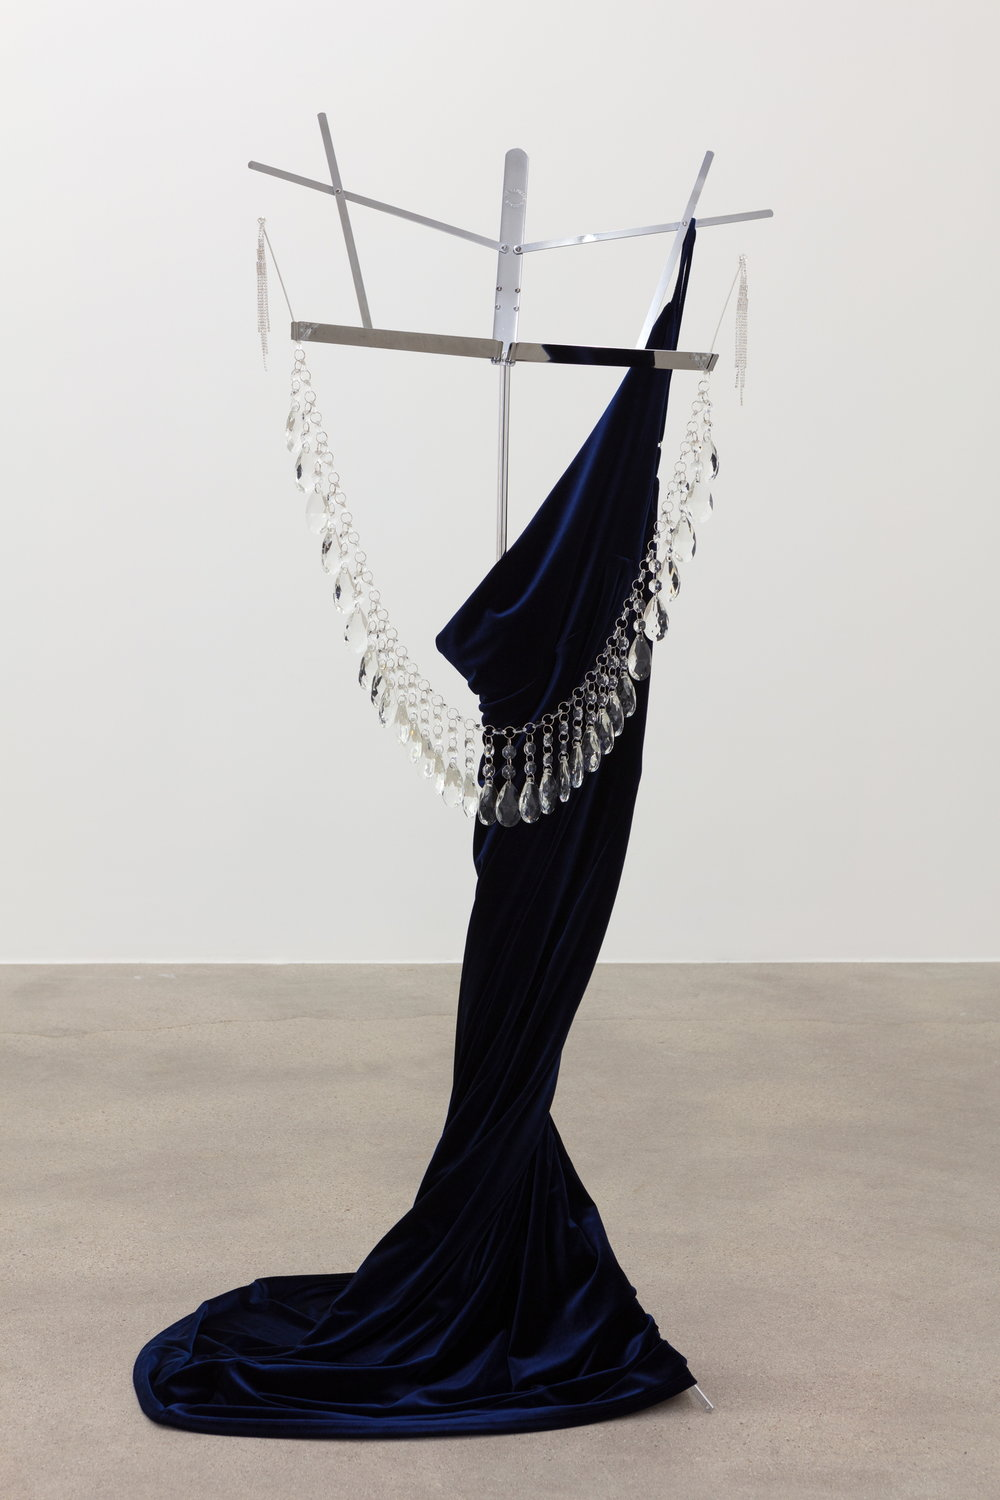 Kayode Ojo,  No.5 The Film (São Paulo, Milan, New York) , 2018, Sorceress Navy Blue Velvet Maxi Dress, Topwholesalejewel Bridal Long 5 Strands Silver Crystal Earrings, StarSide Crystal Chandelier Teardrop Prisms 50mm, Crystal Beads Clear Chandelier Bead Lamp Chain, Hamilton Stands KB400 Classic American Folding Sheet Music Stand (Chrome), Dimensions variable.